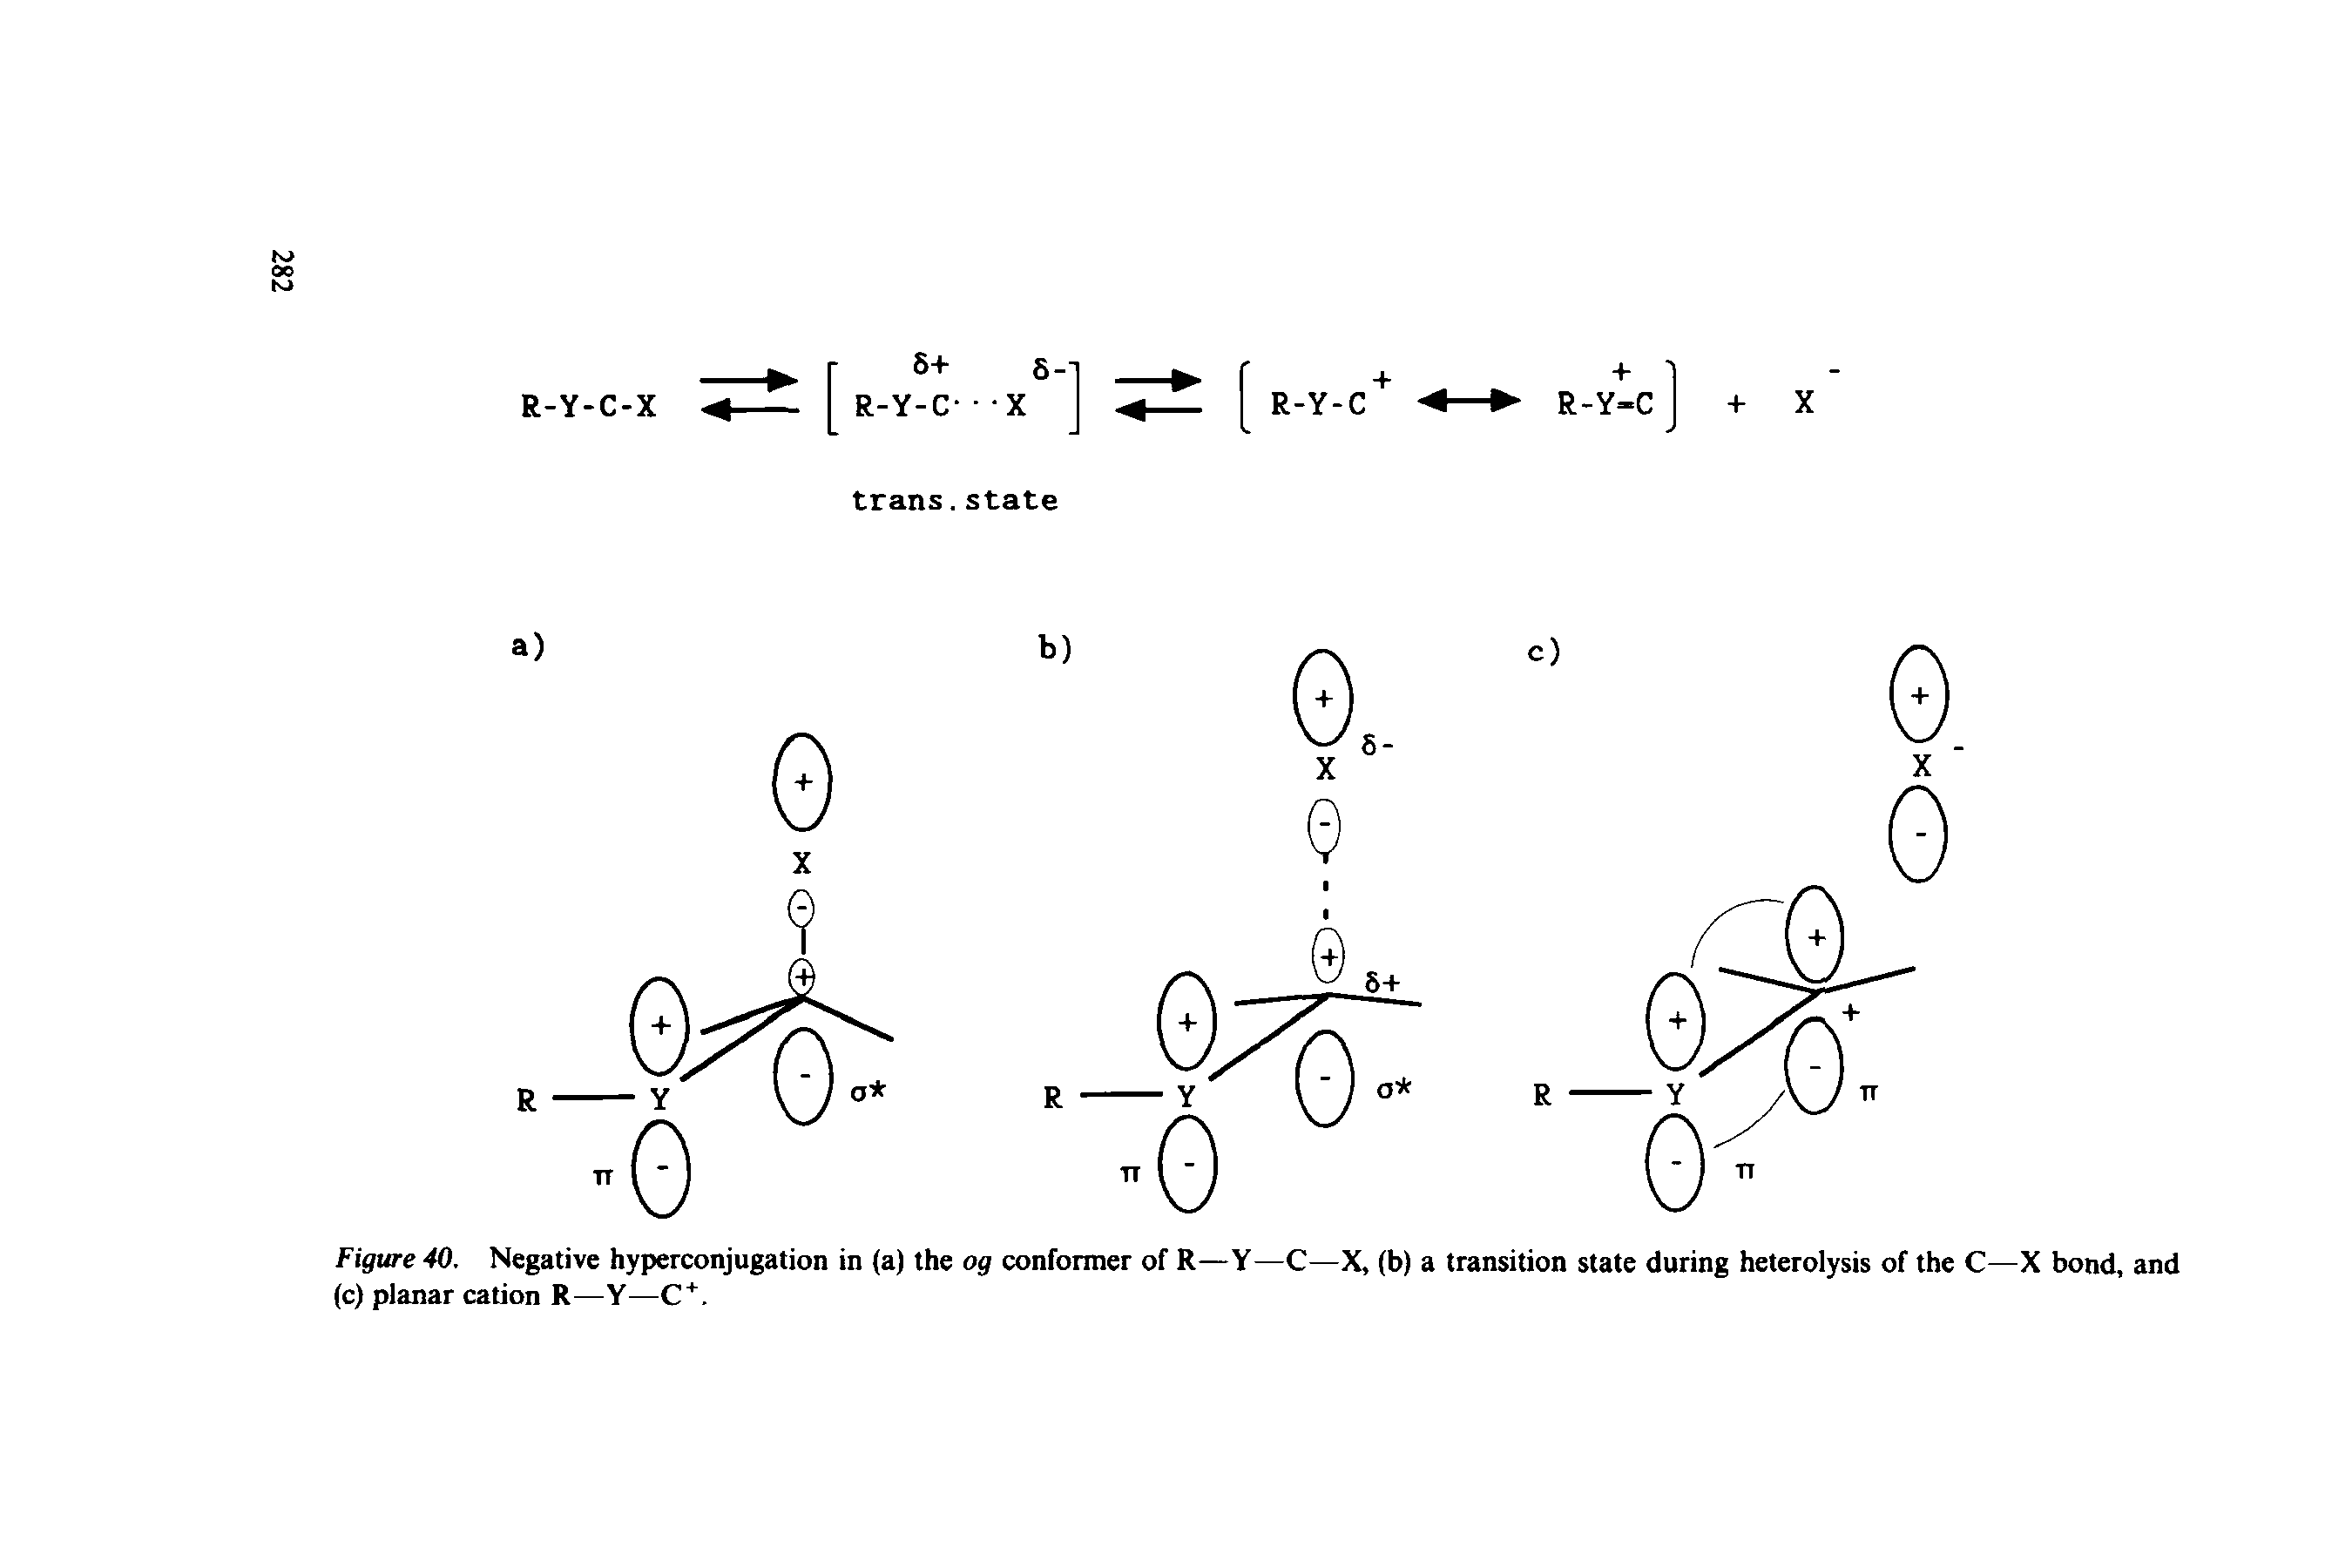 Figure 40. Negative hyperconjugation in (a) the og conformer of R—Y—C—X, (b) a transition state during heterolysis of the C—X bond, and (c) planar cation R—Y—C. ...